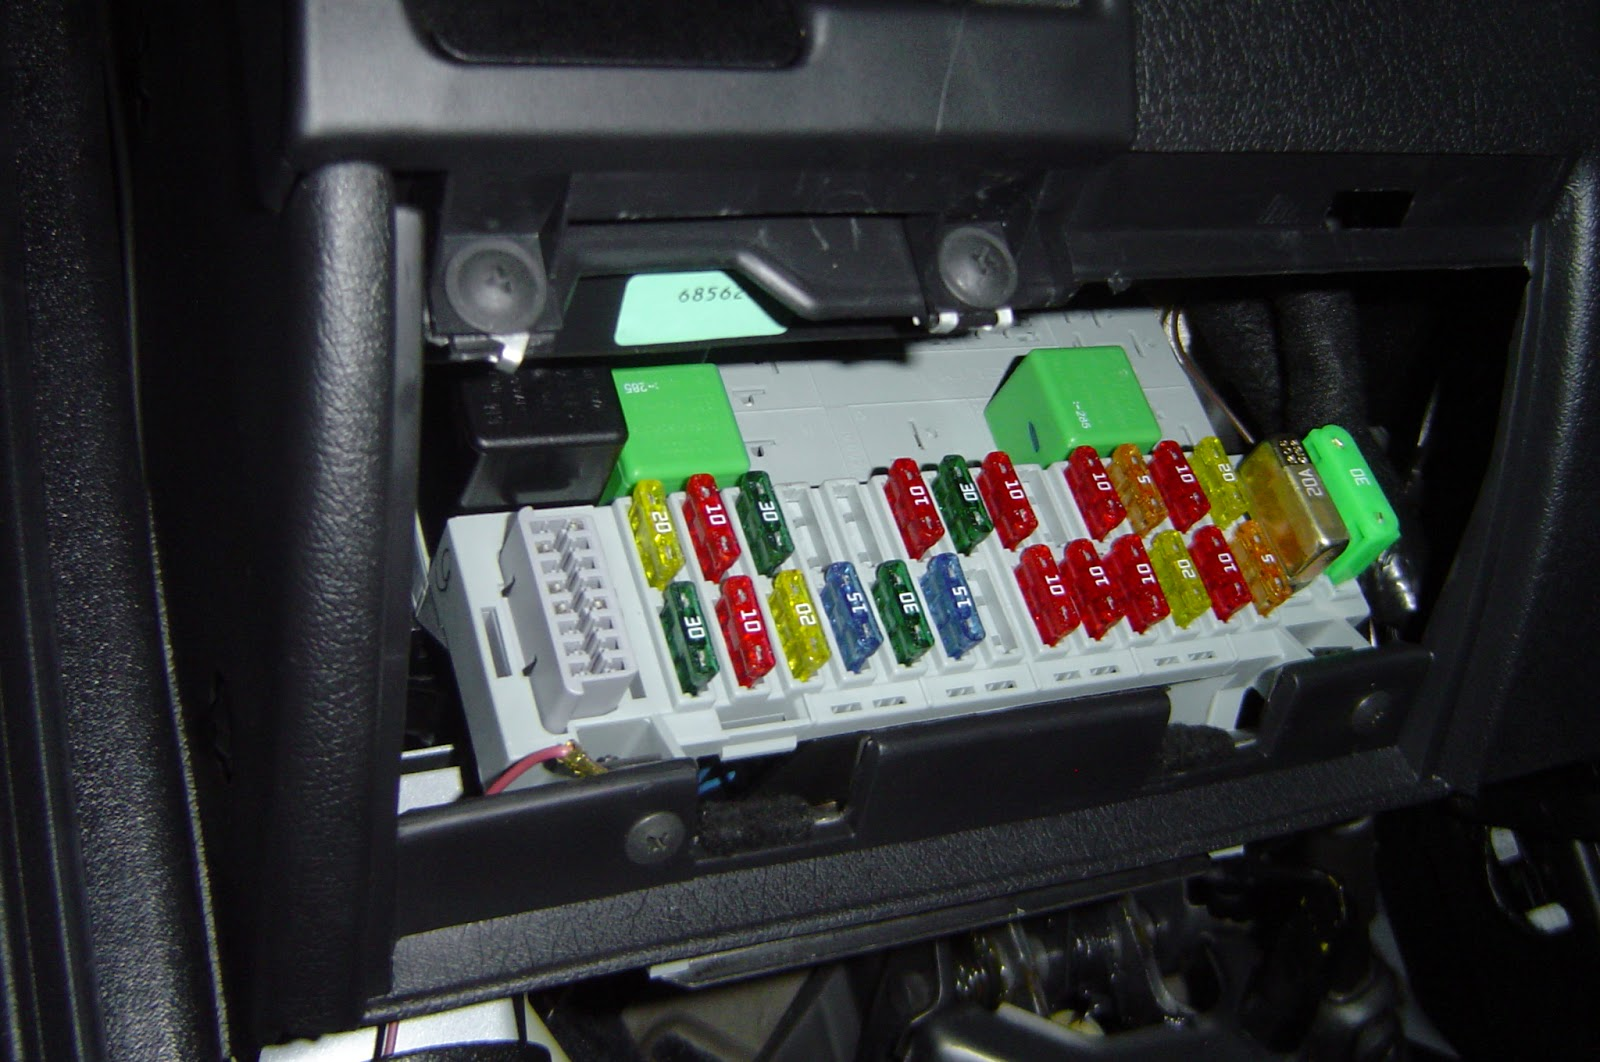 Ford F750 Fuse Box Explore Schematic Wiring Diagram \u2022 2015 Ford F750  Fuse Box Location 2013 Ford F750 Fuse Box Location